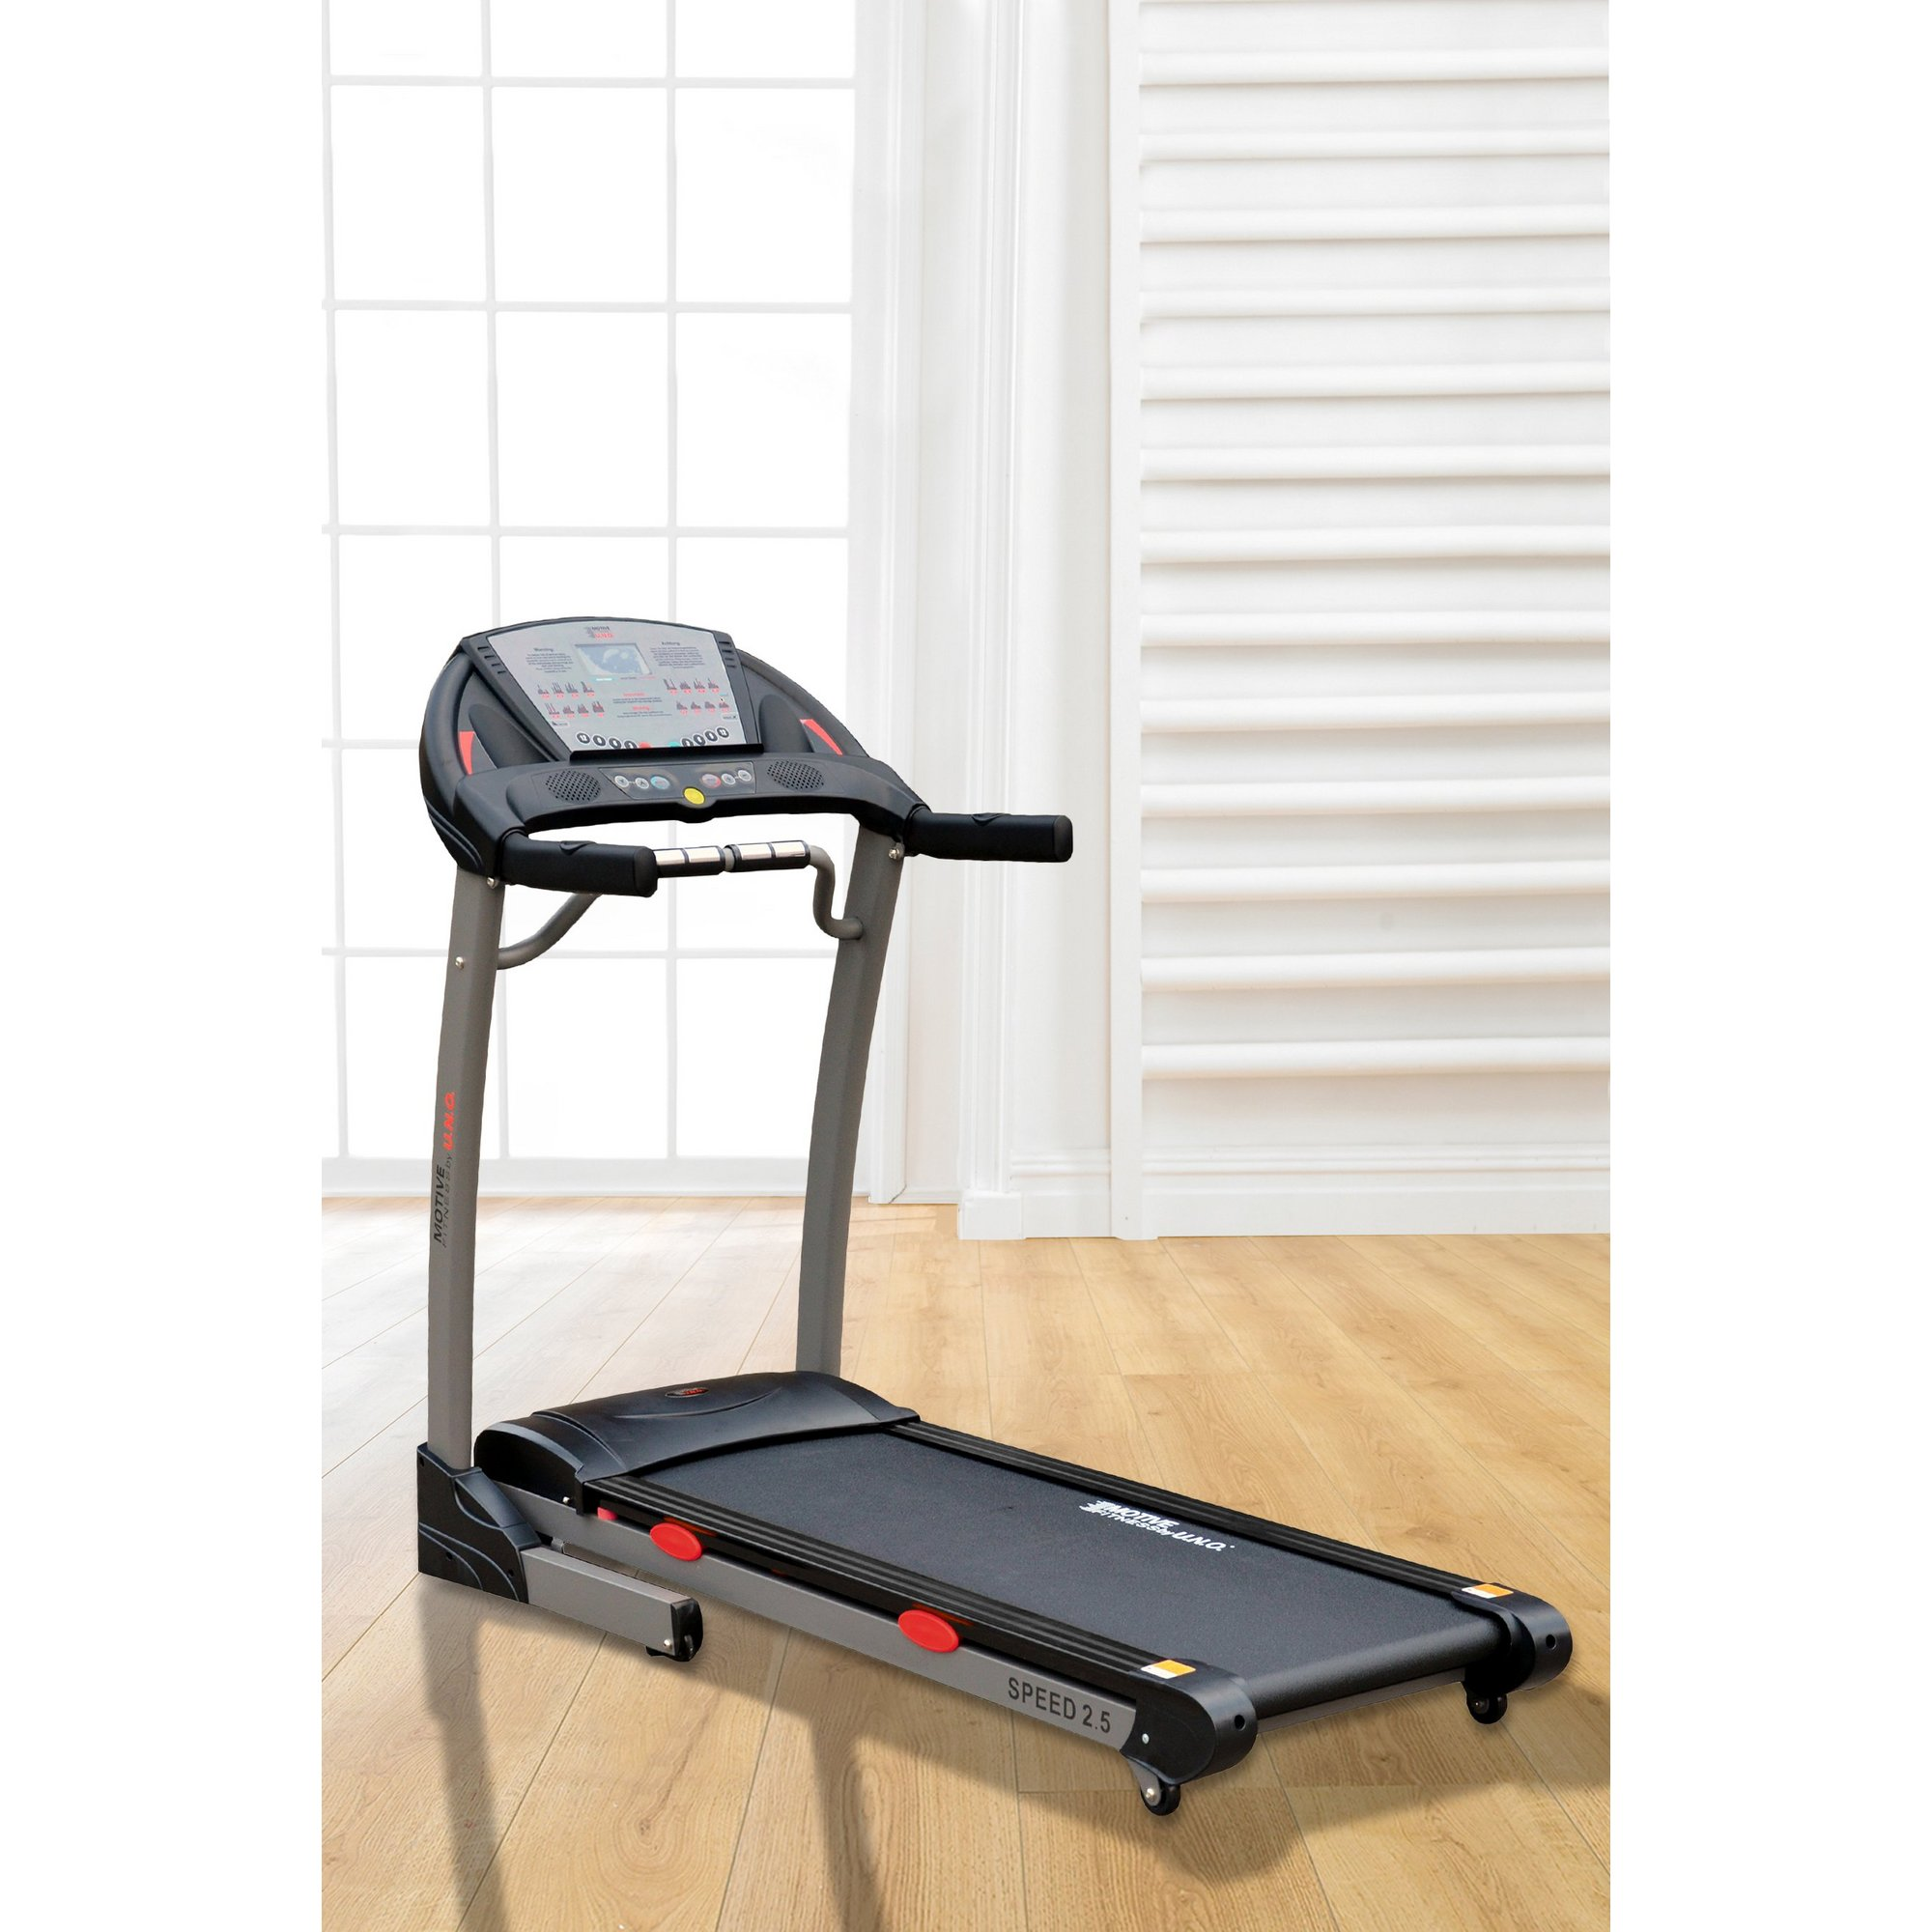 Image of Motive Fitness By Uno Speed 2.5 Treadmill